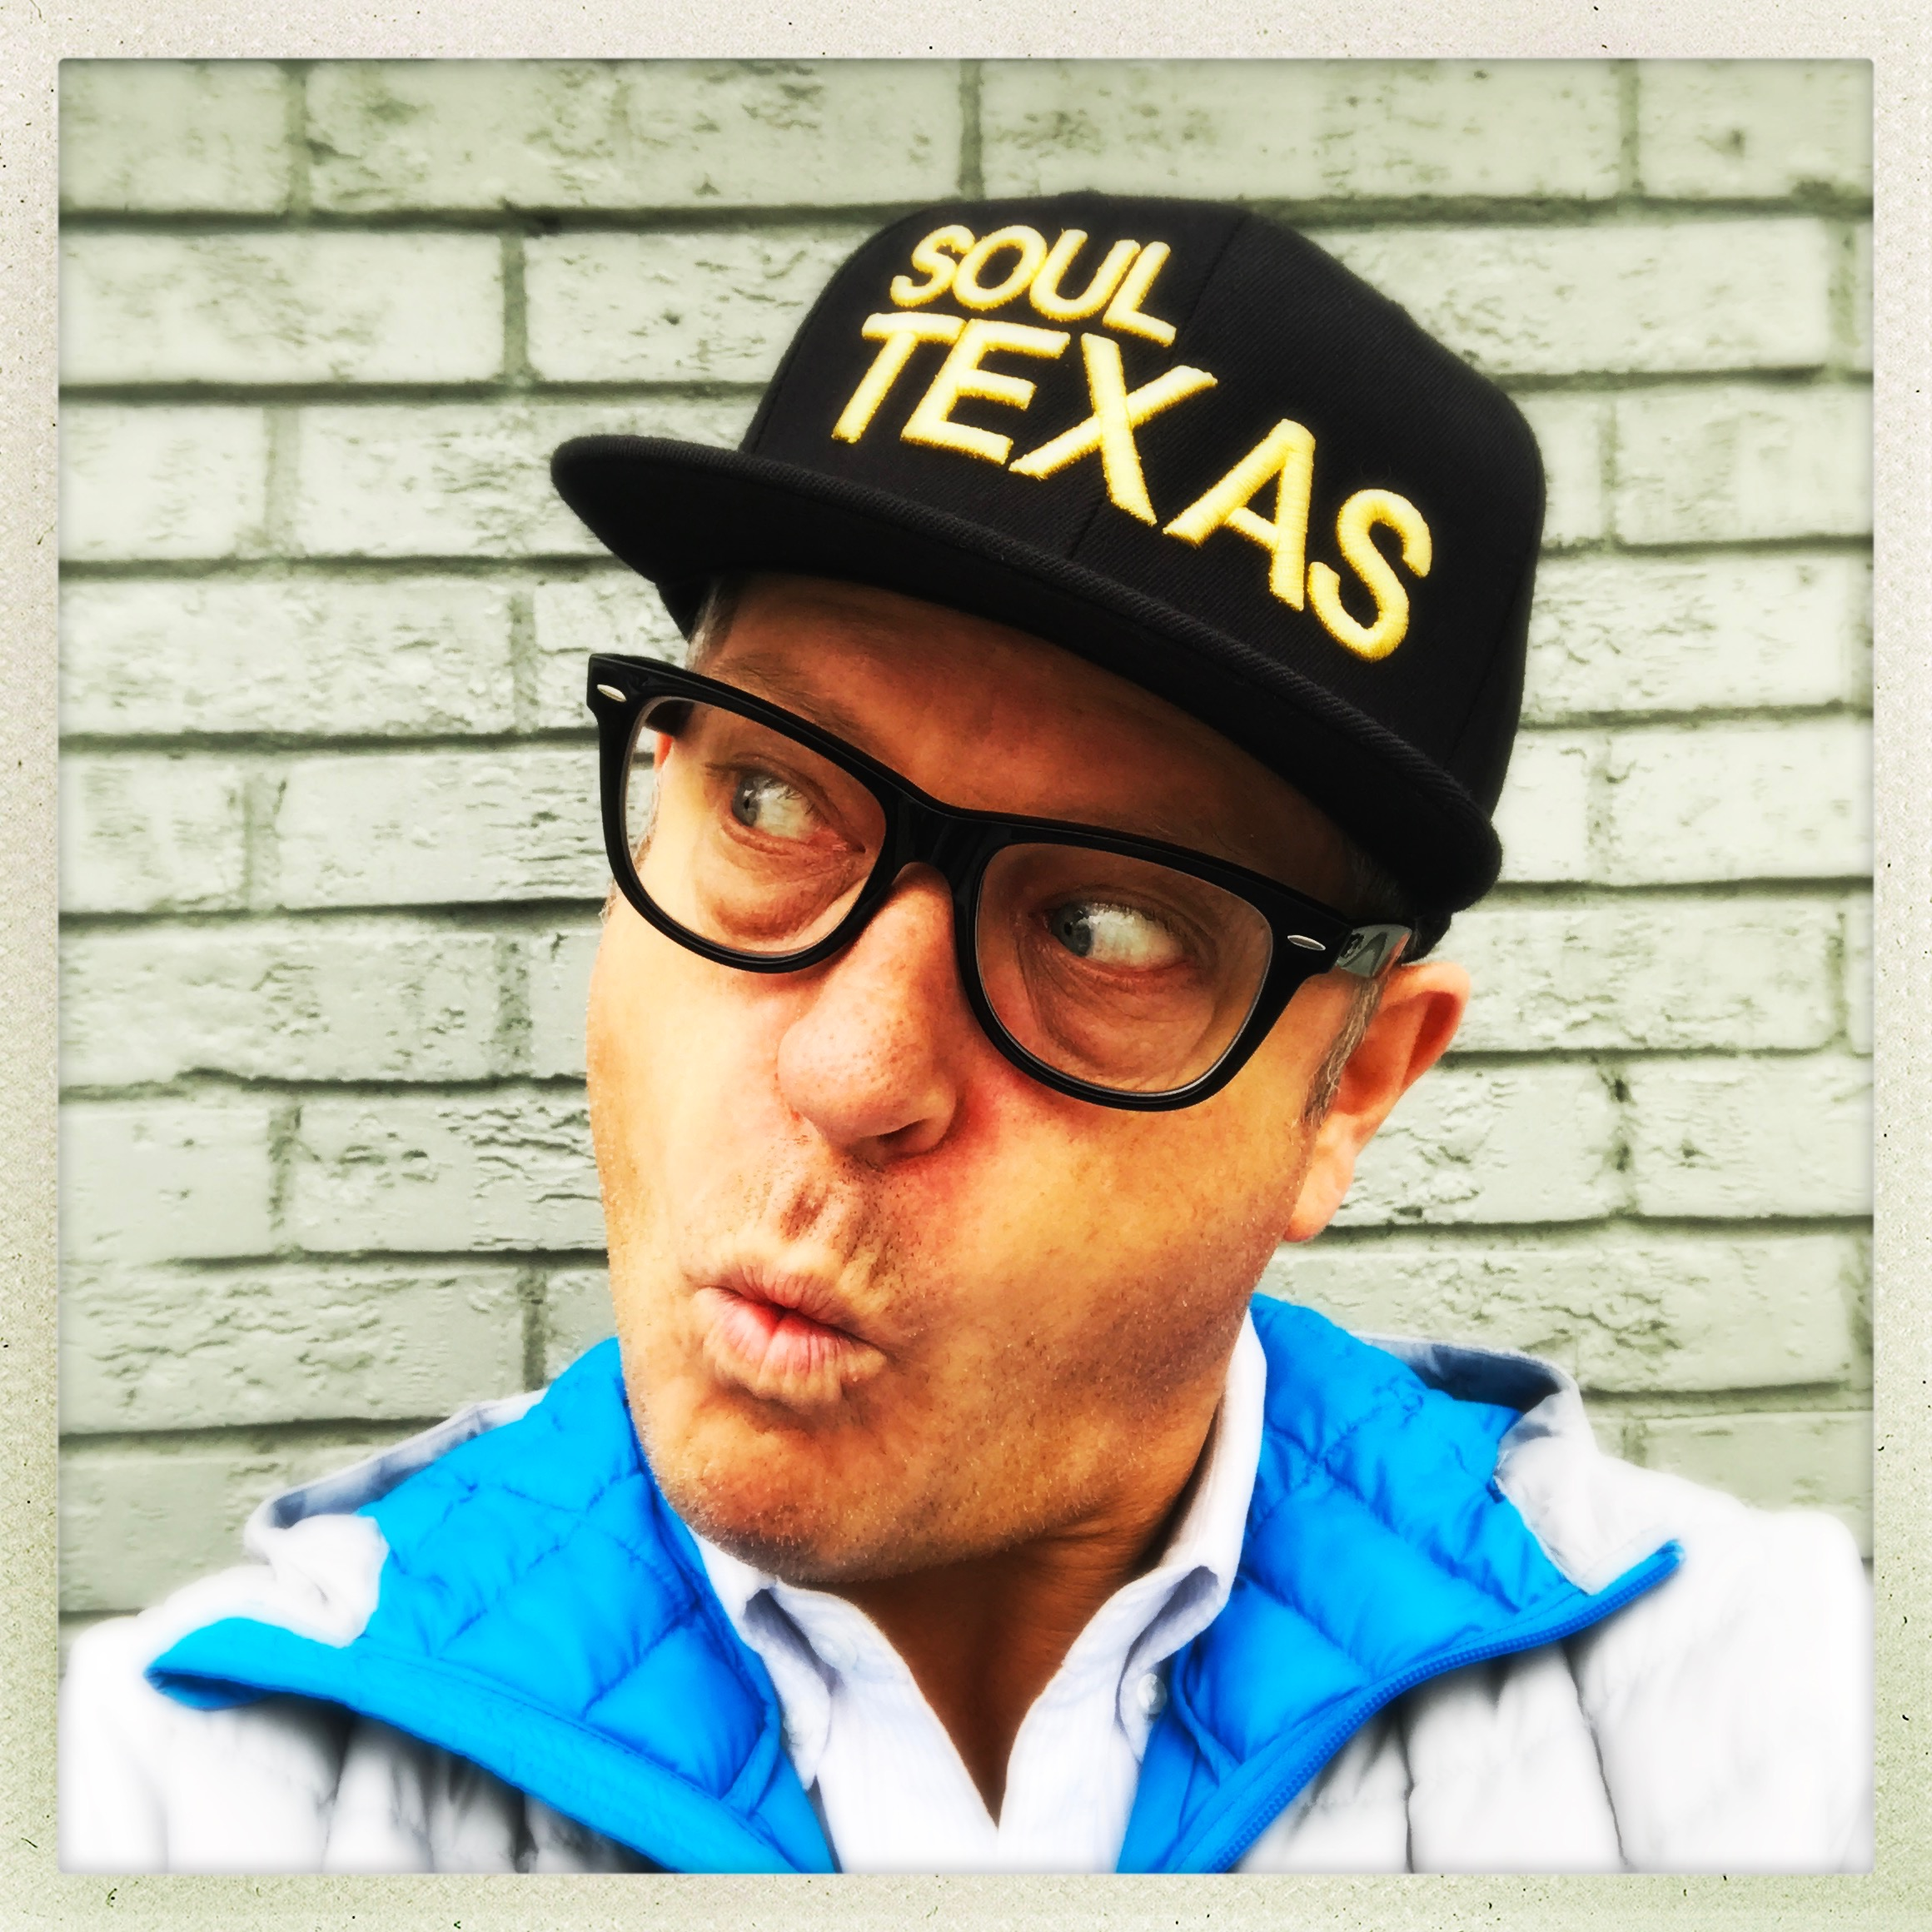 P.S... RAD HAT BY SOUL CYCLE...